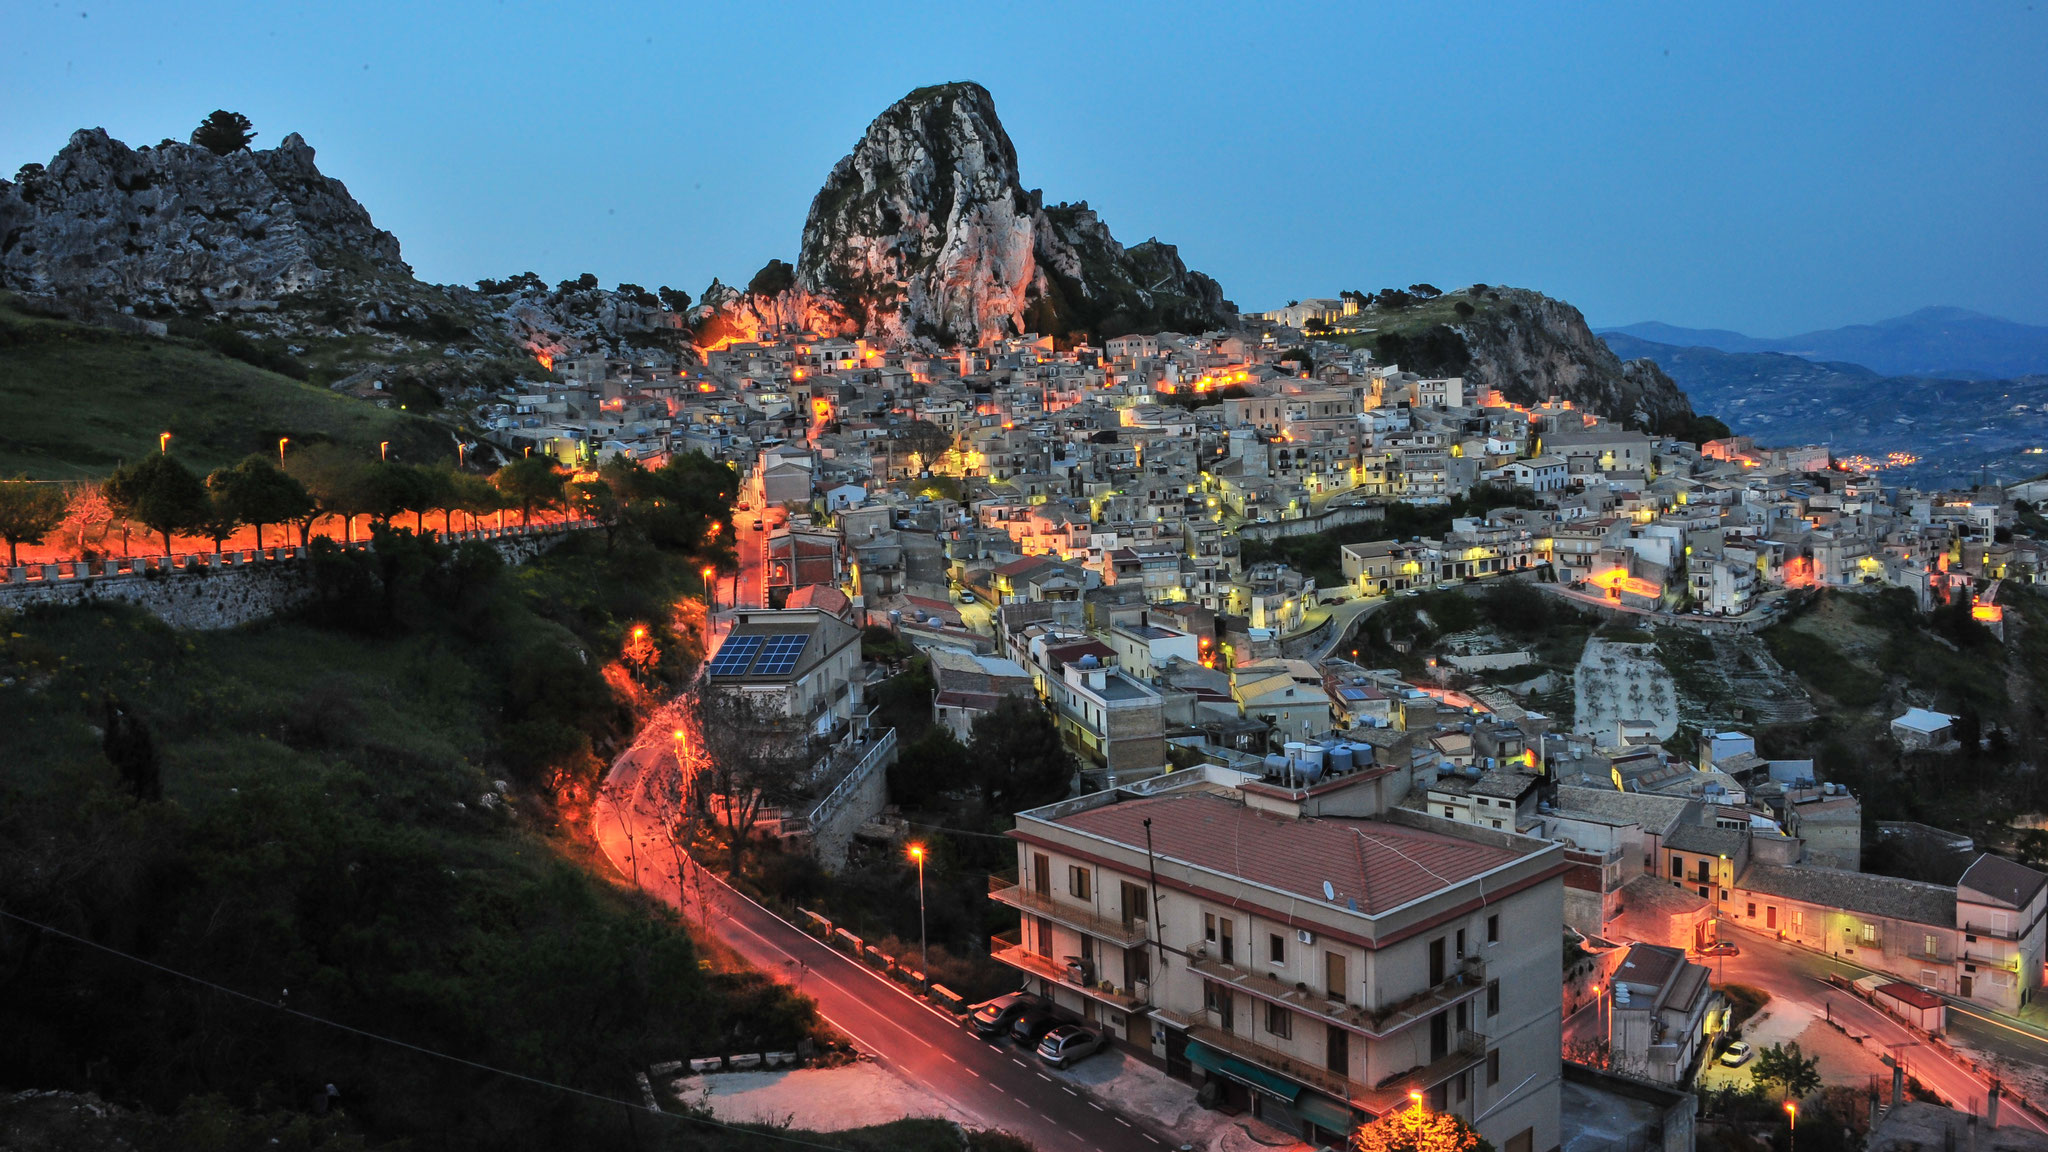 Sicilia, Village on the top of a mountain